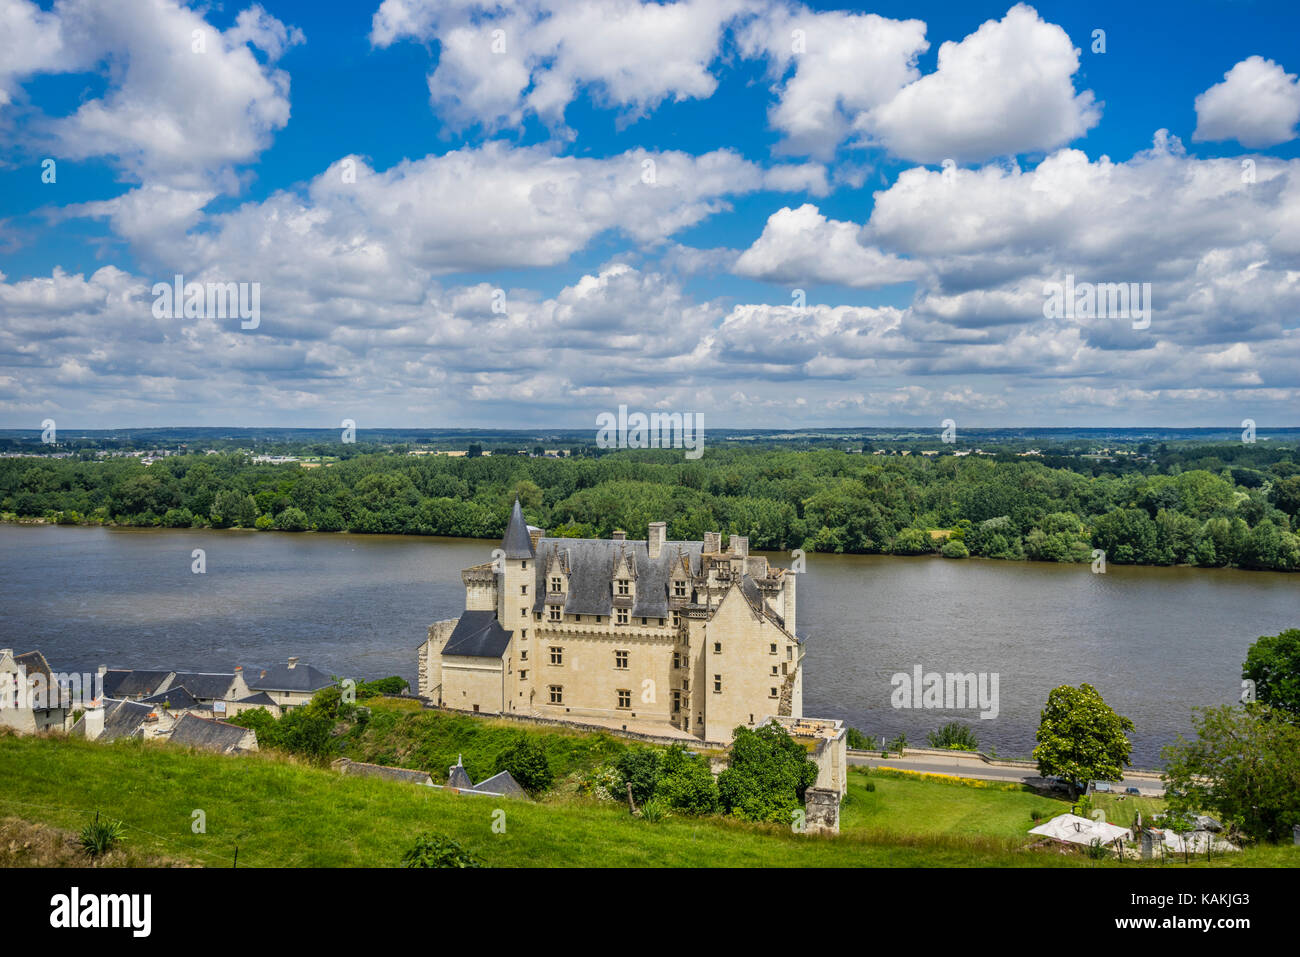 france maine et loire castle stock photos france maine et loire castle stock images alamy. Black Bedroom Furniture Sets. Home Design Ideas